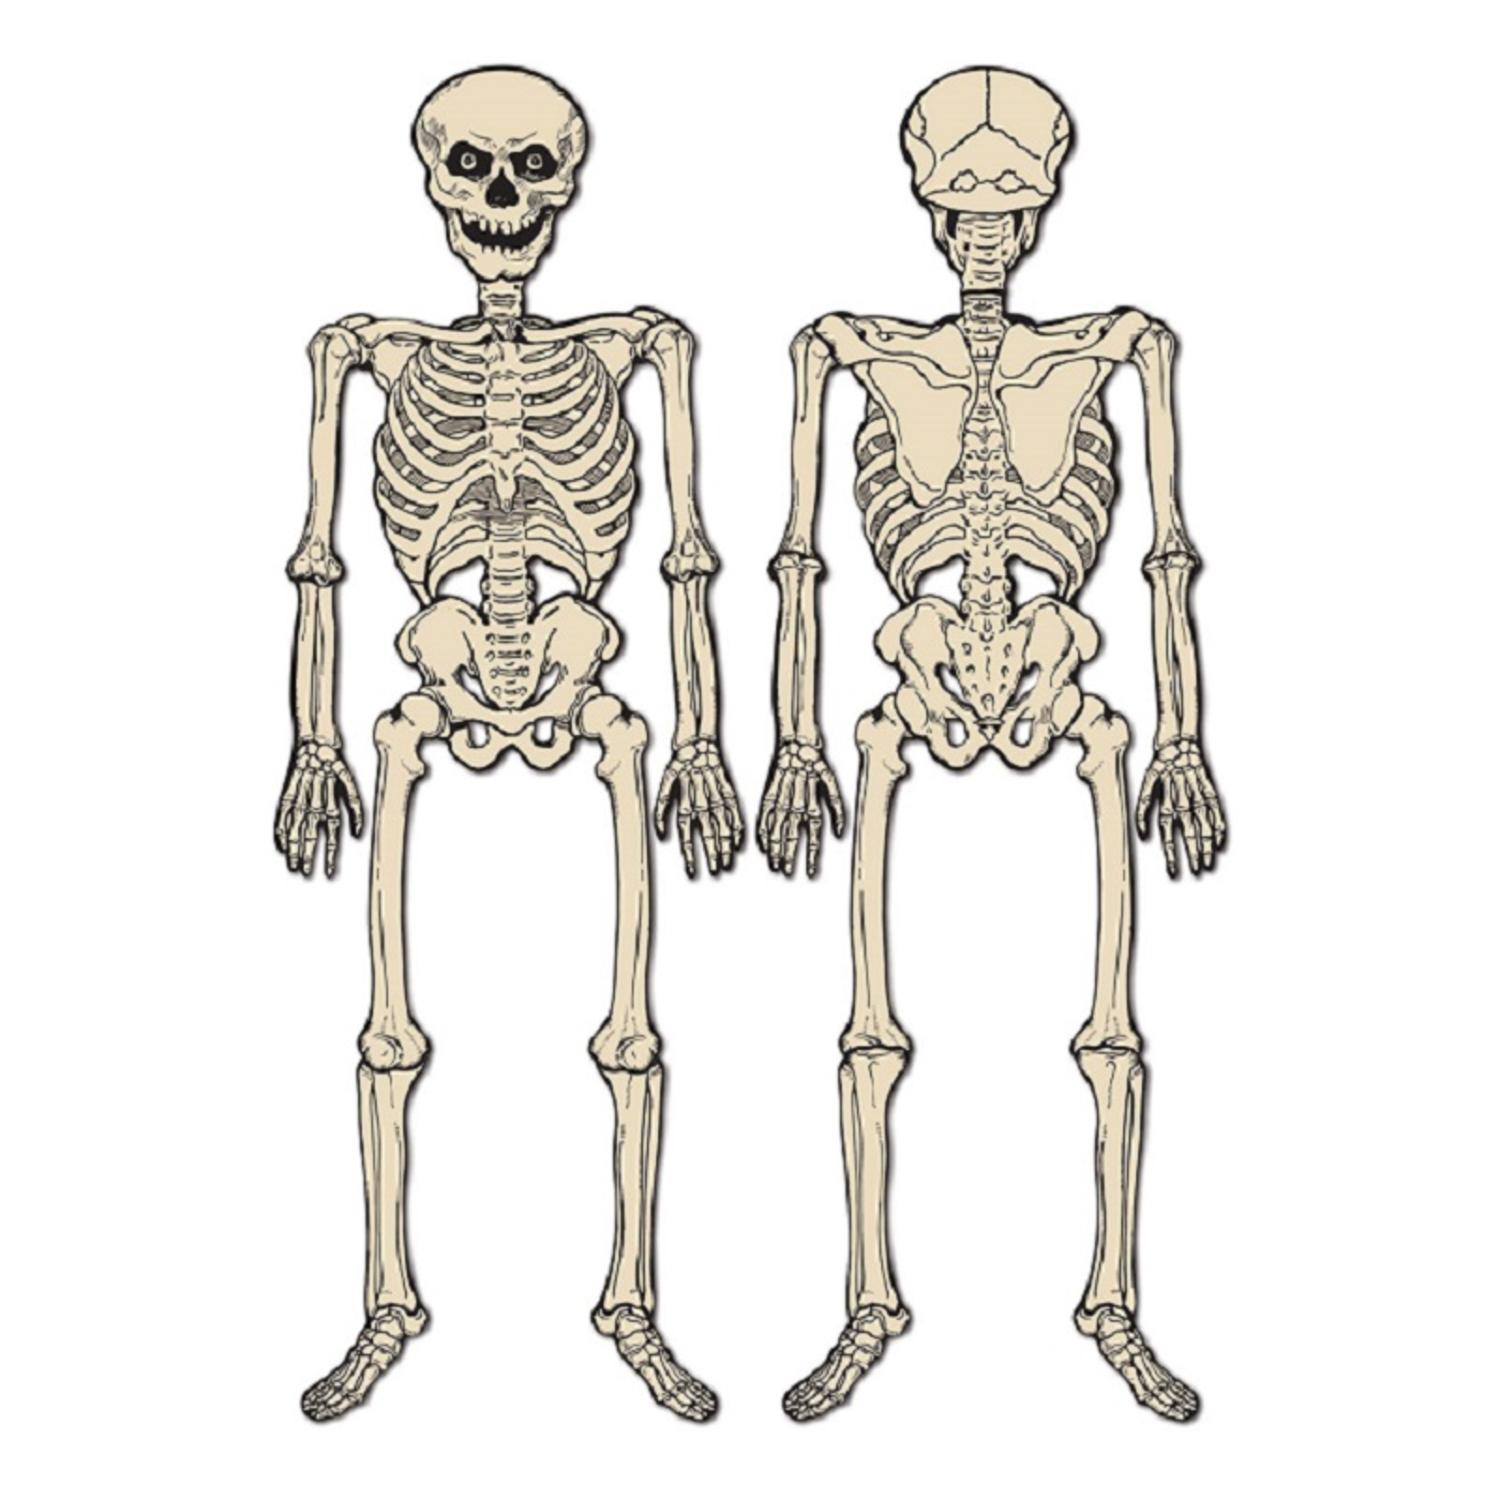 Club Pack of 12 Spooky Jointed Skeleton Halloween Decorations 4.25'